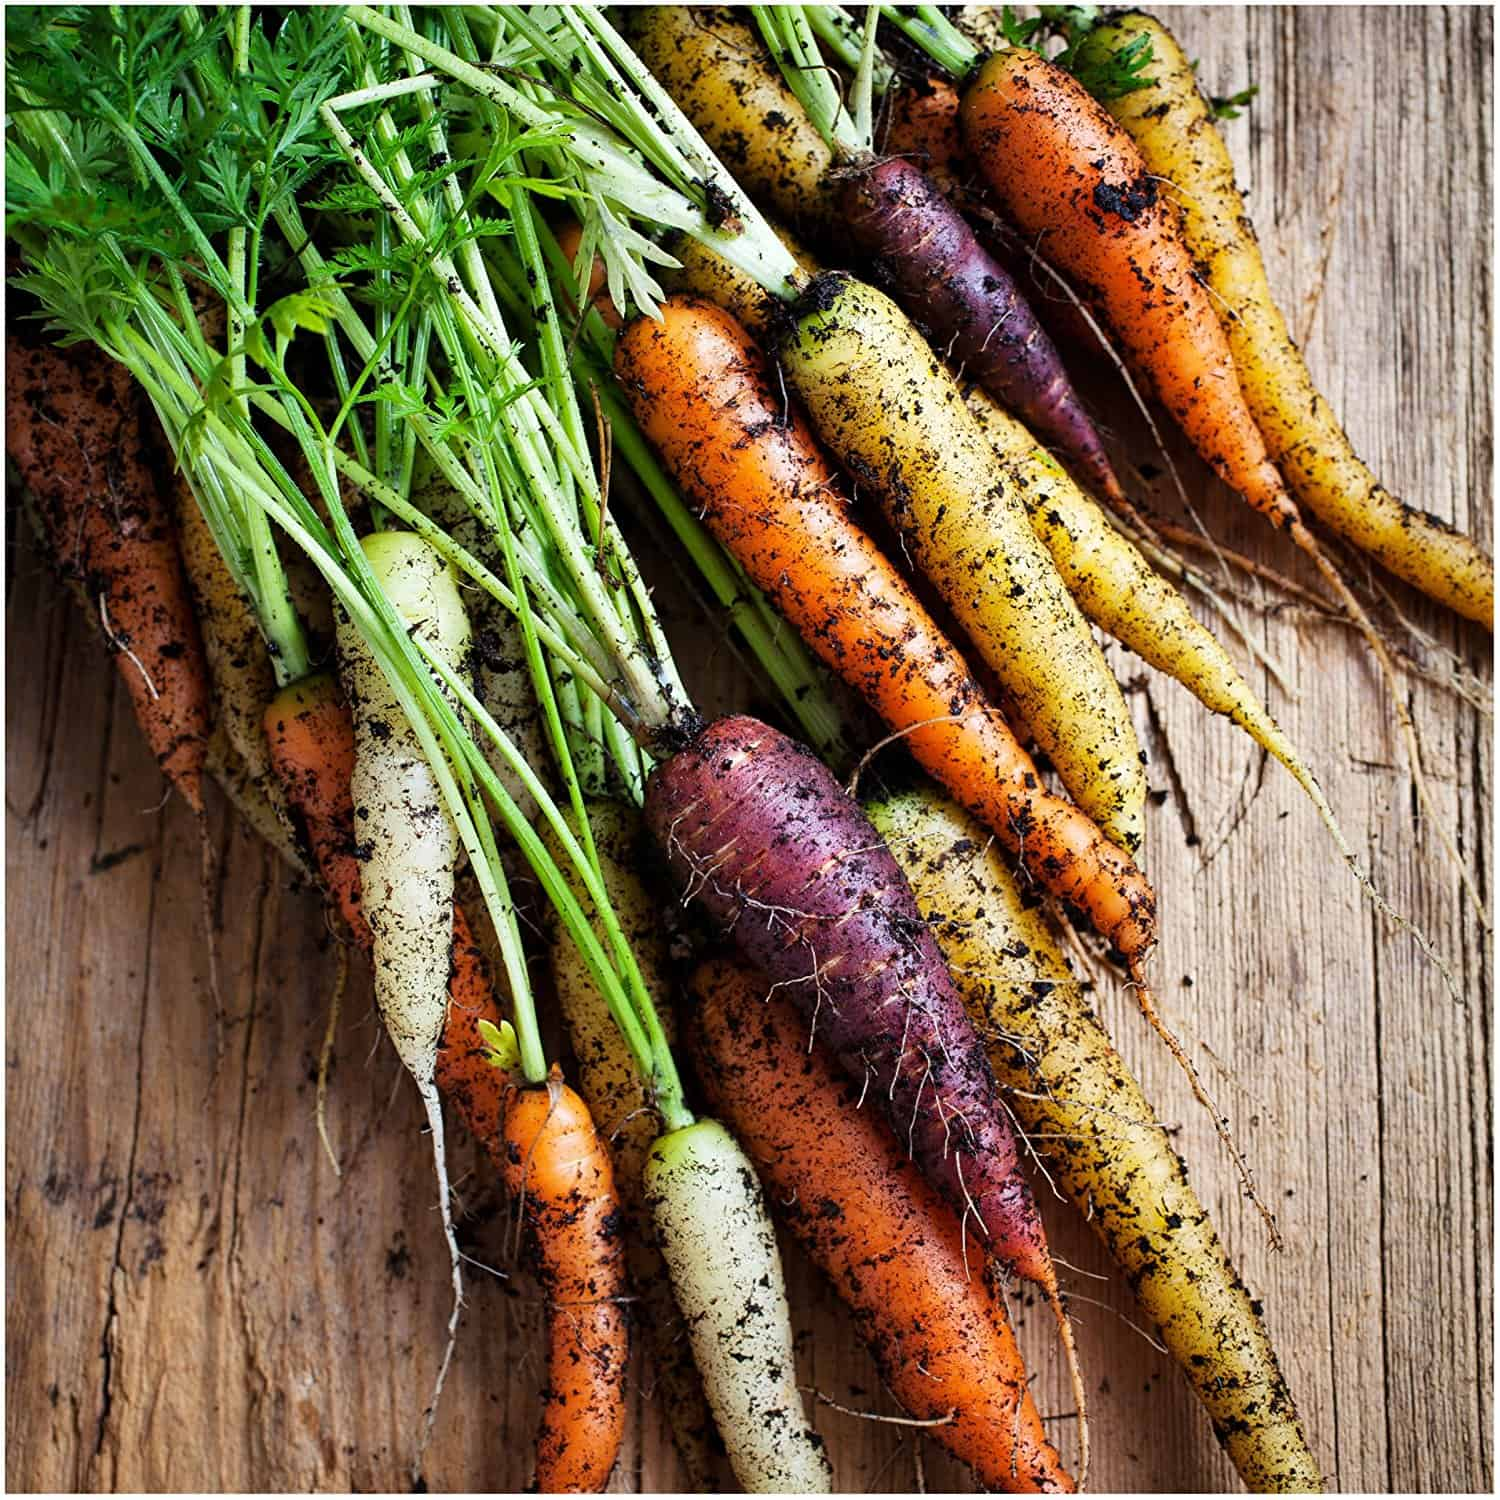 Carrot Rainbow Blend Seeds